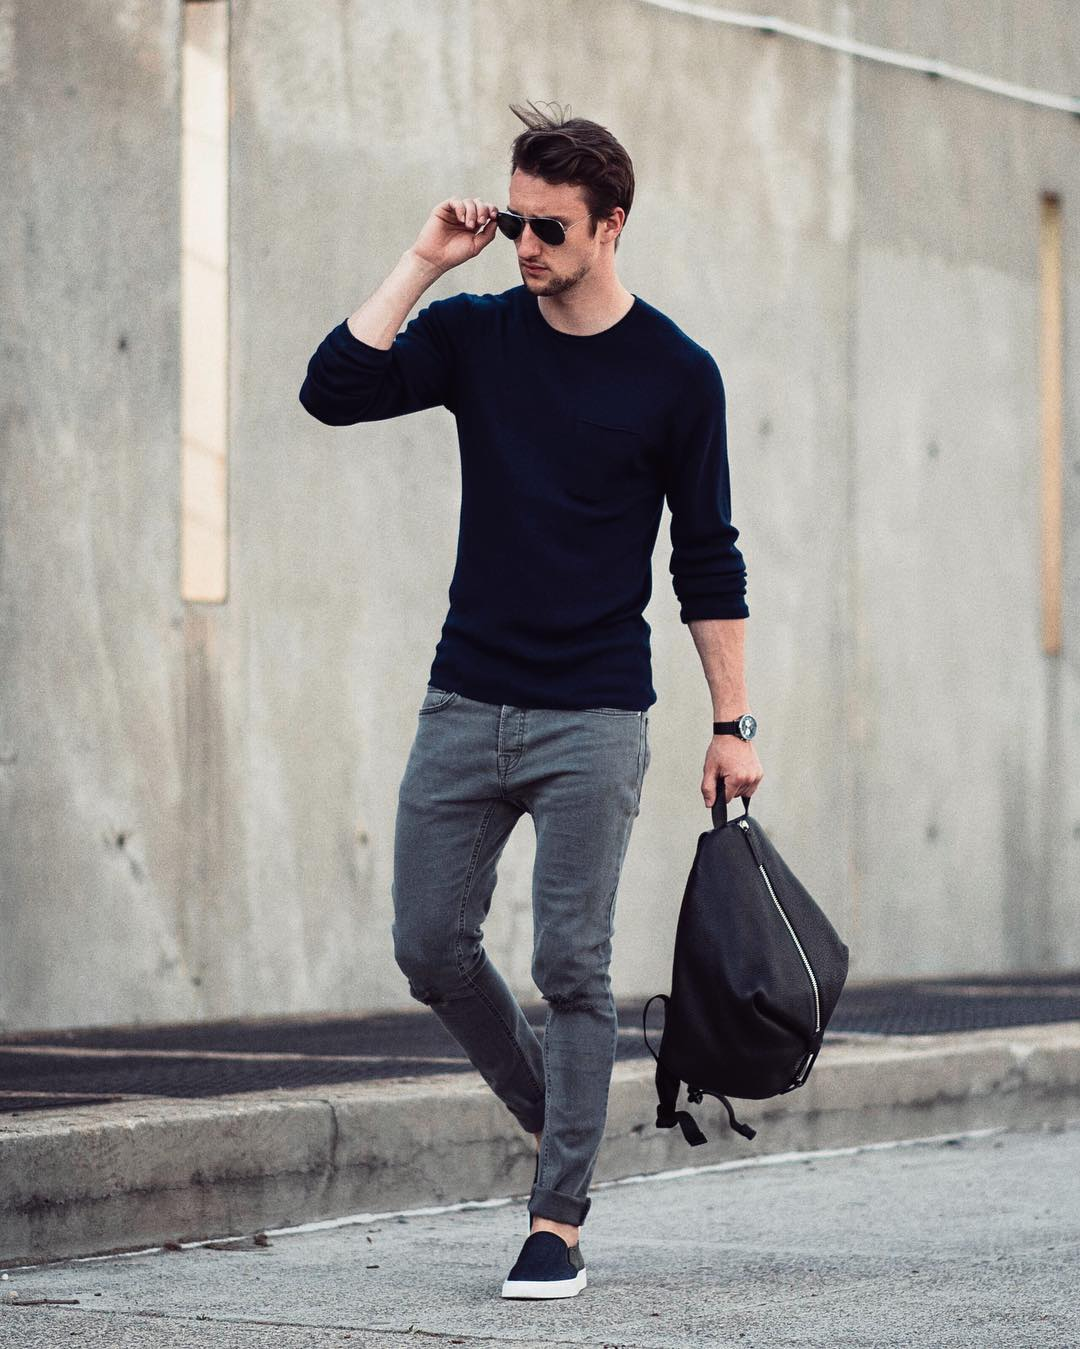 5 Outfits That Will Make You Look Way Cooler – LIFESTYLE BY PS